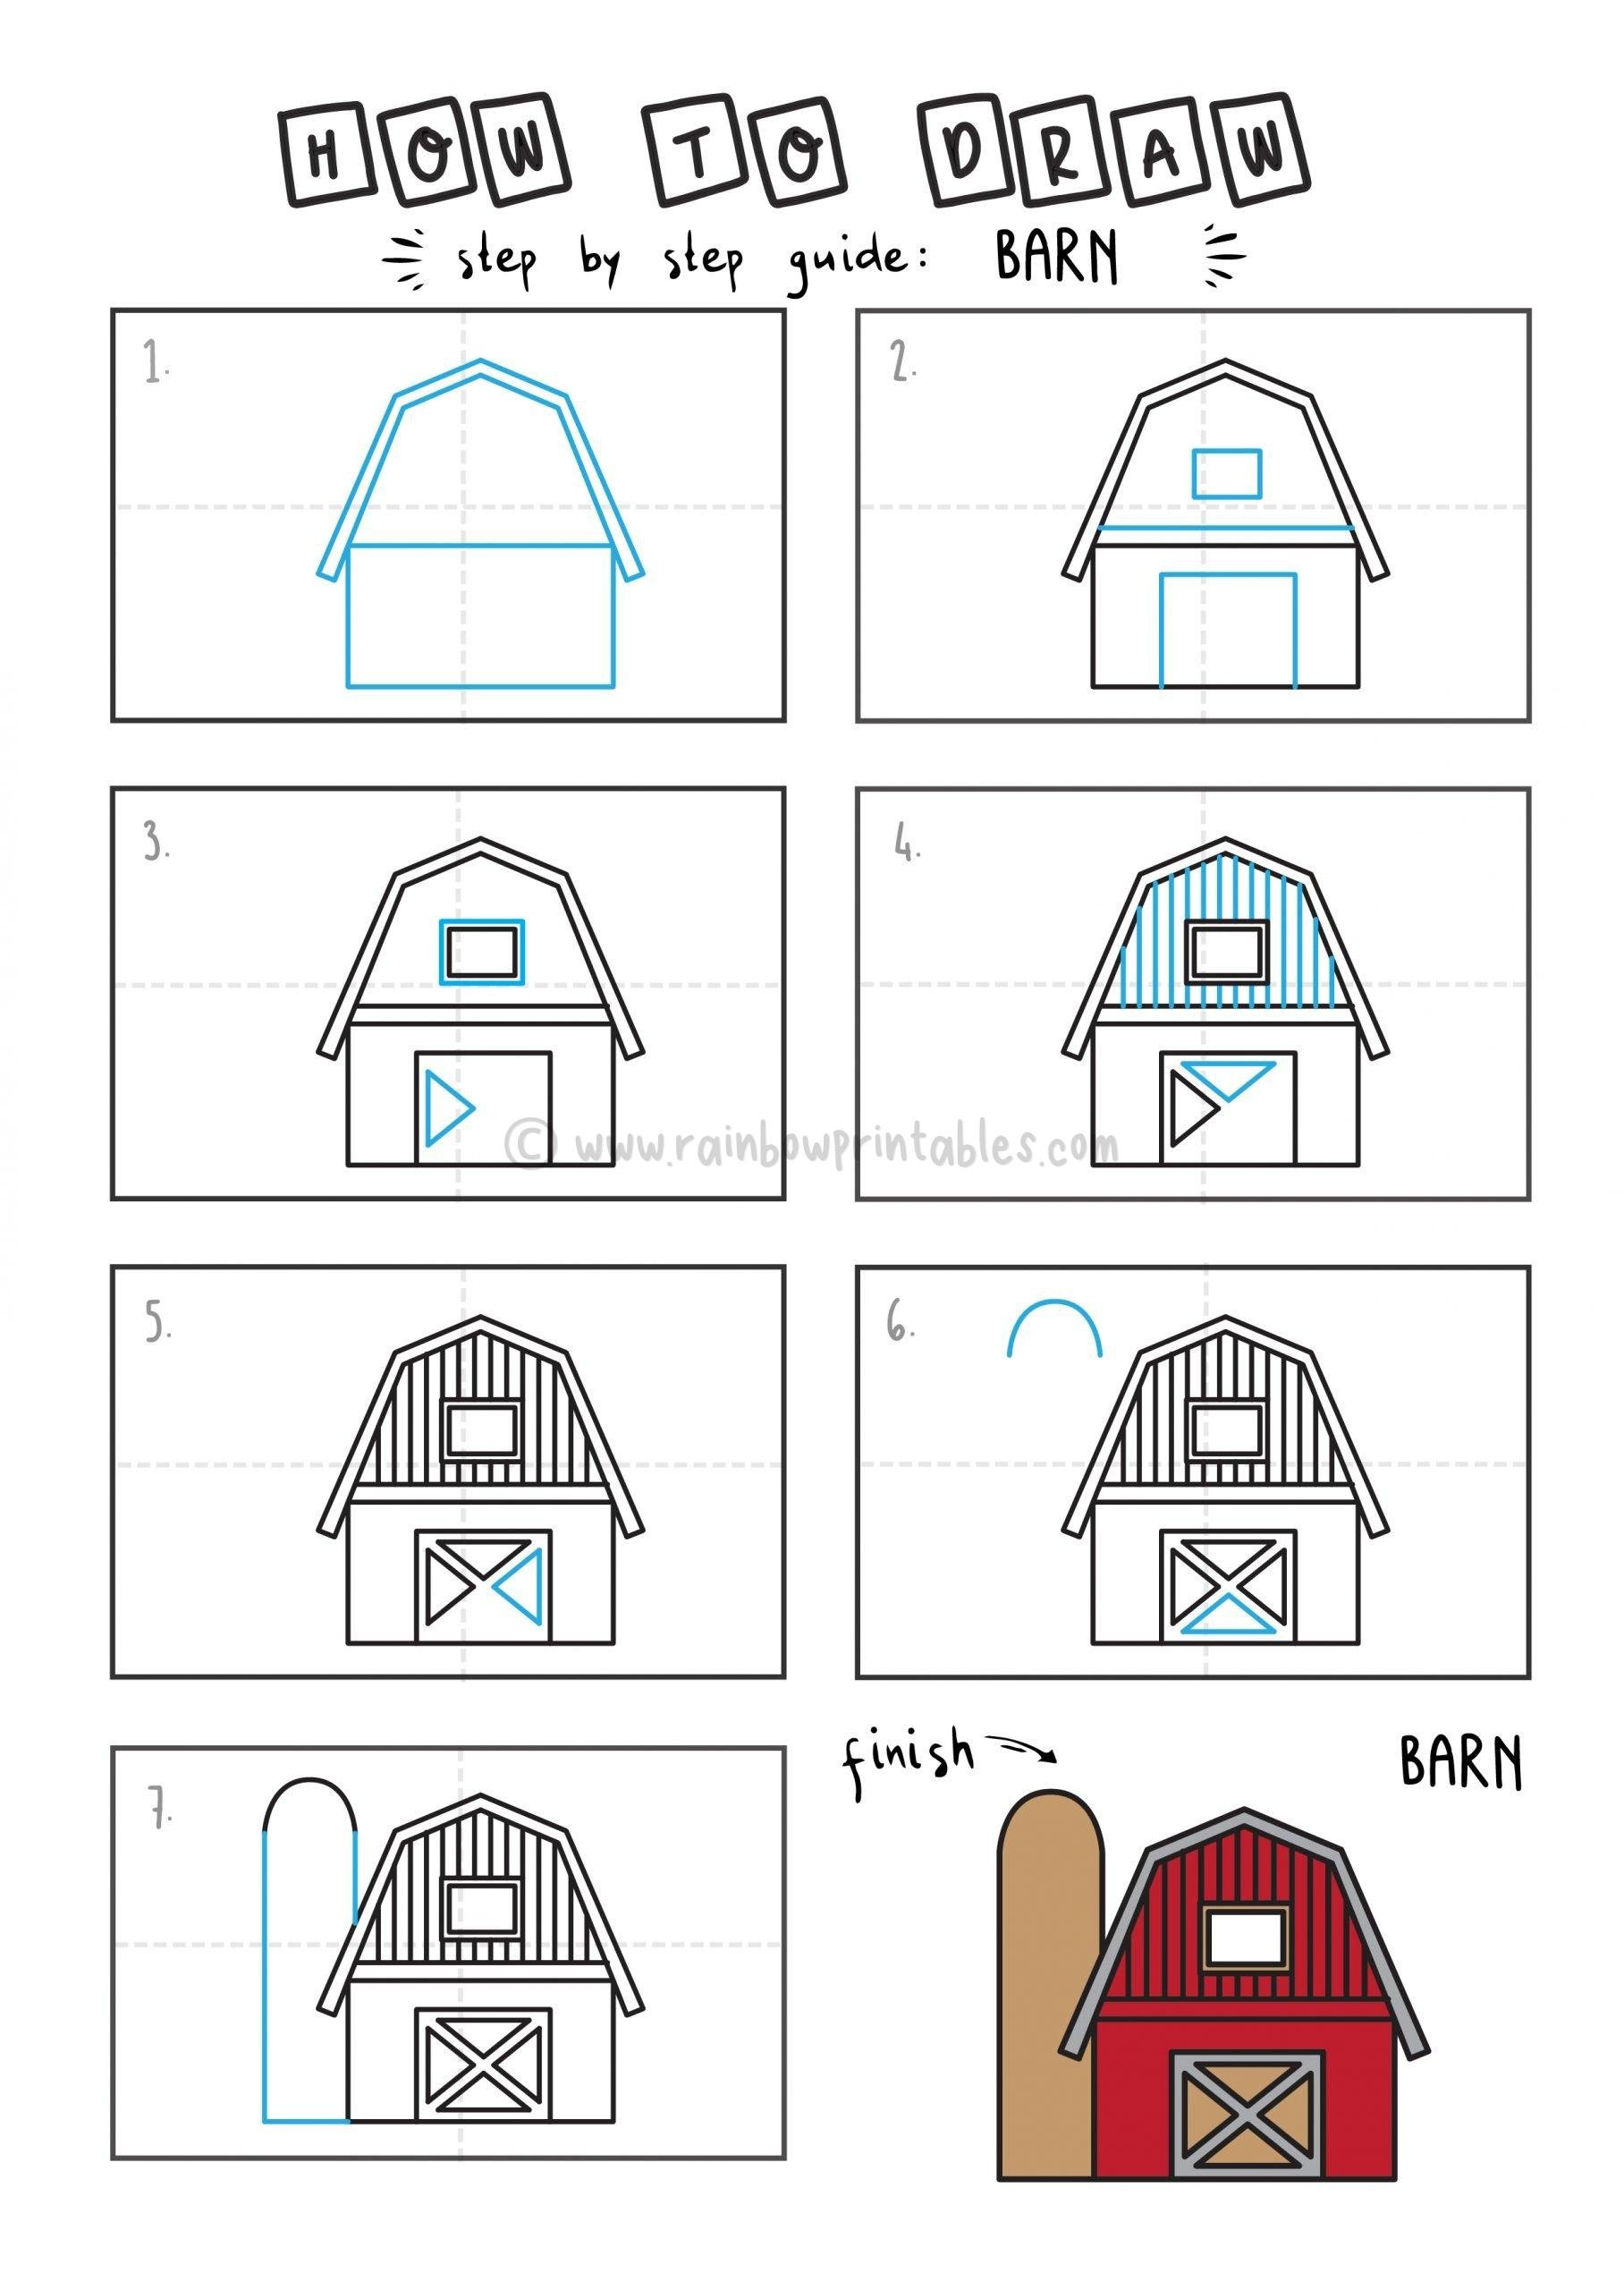 How To DRAW FARM BARN Step By Step For Kids Easy Illustration Doodle Drawing GUIDE